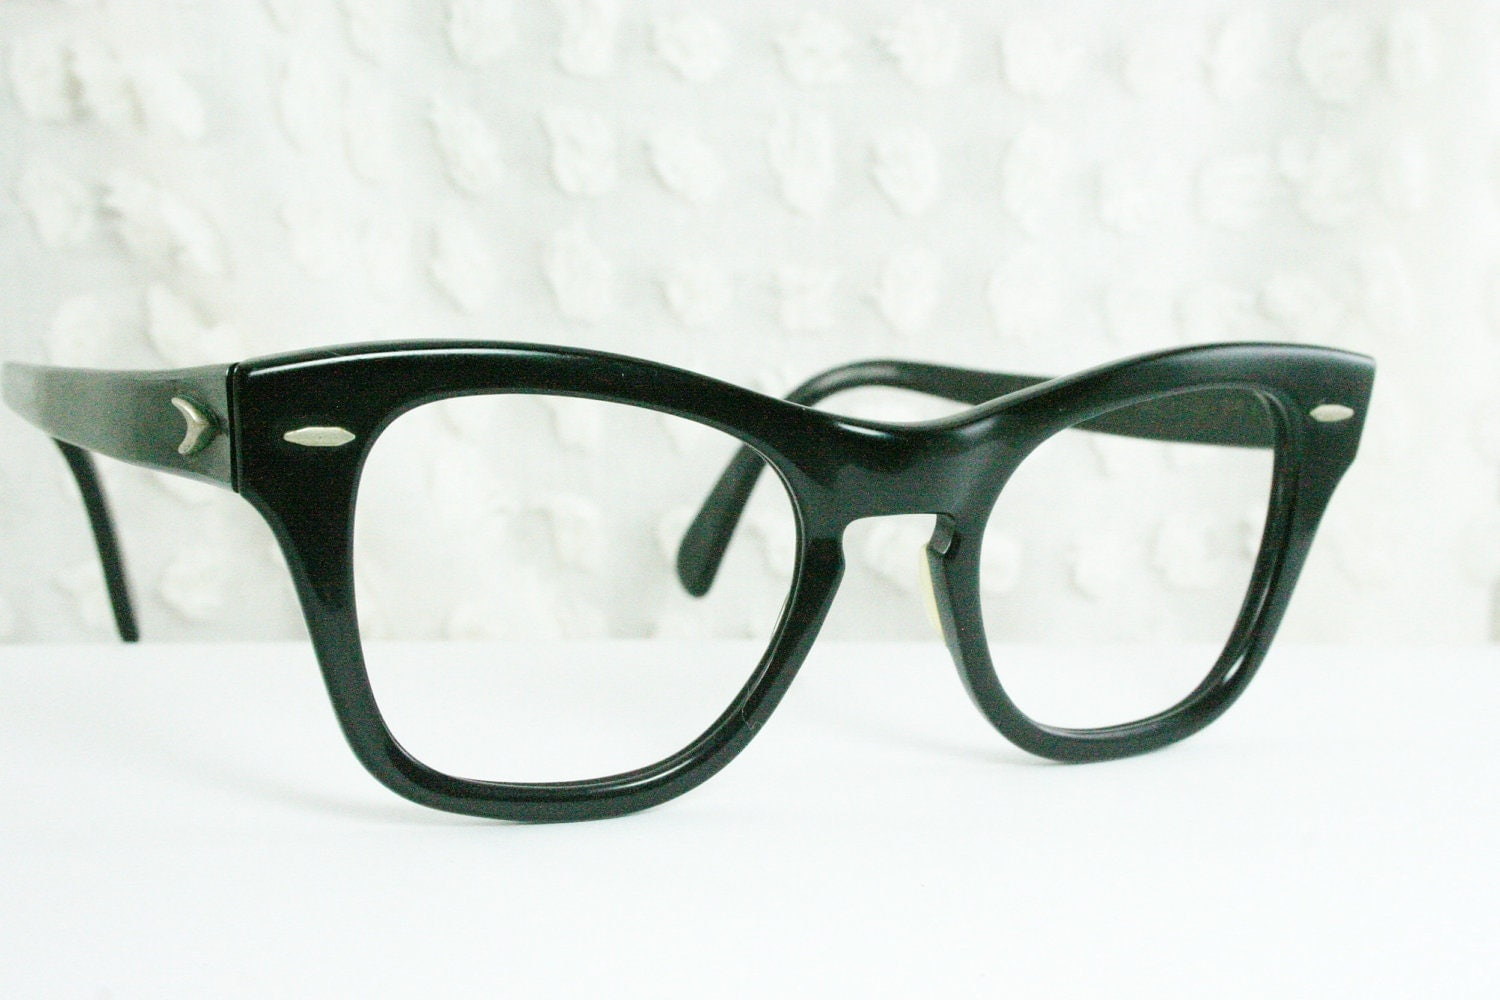 Vintage 60s Mens Glasses 1950s Black Eyeglasses By Diaeyewear